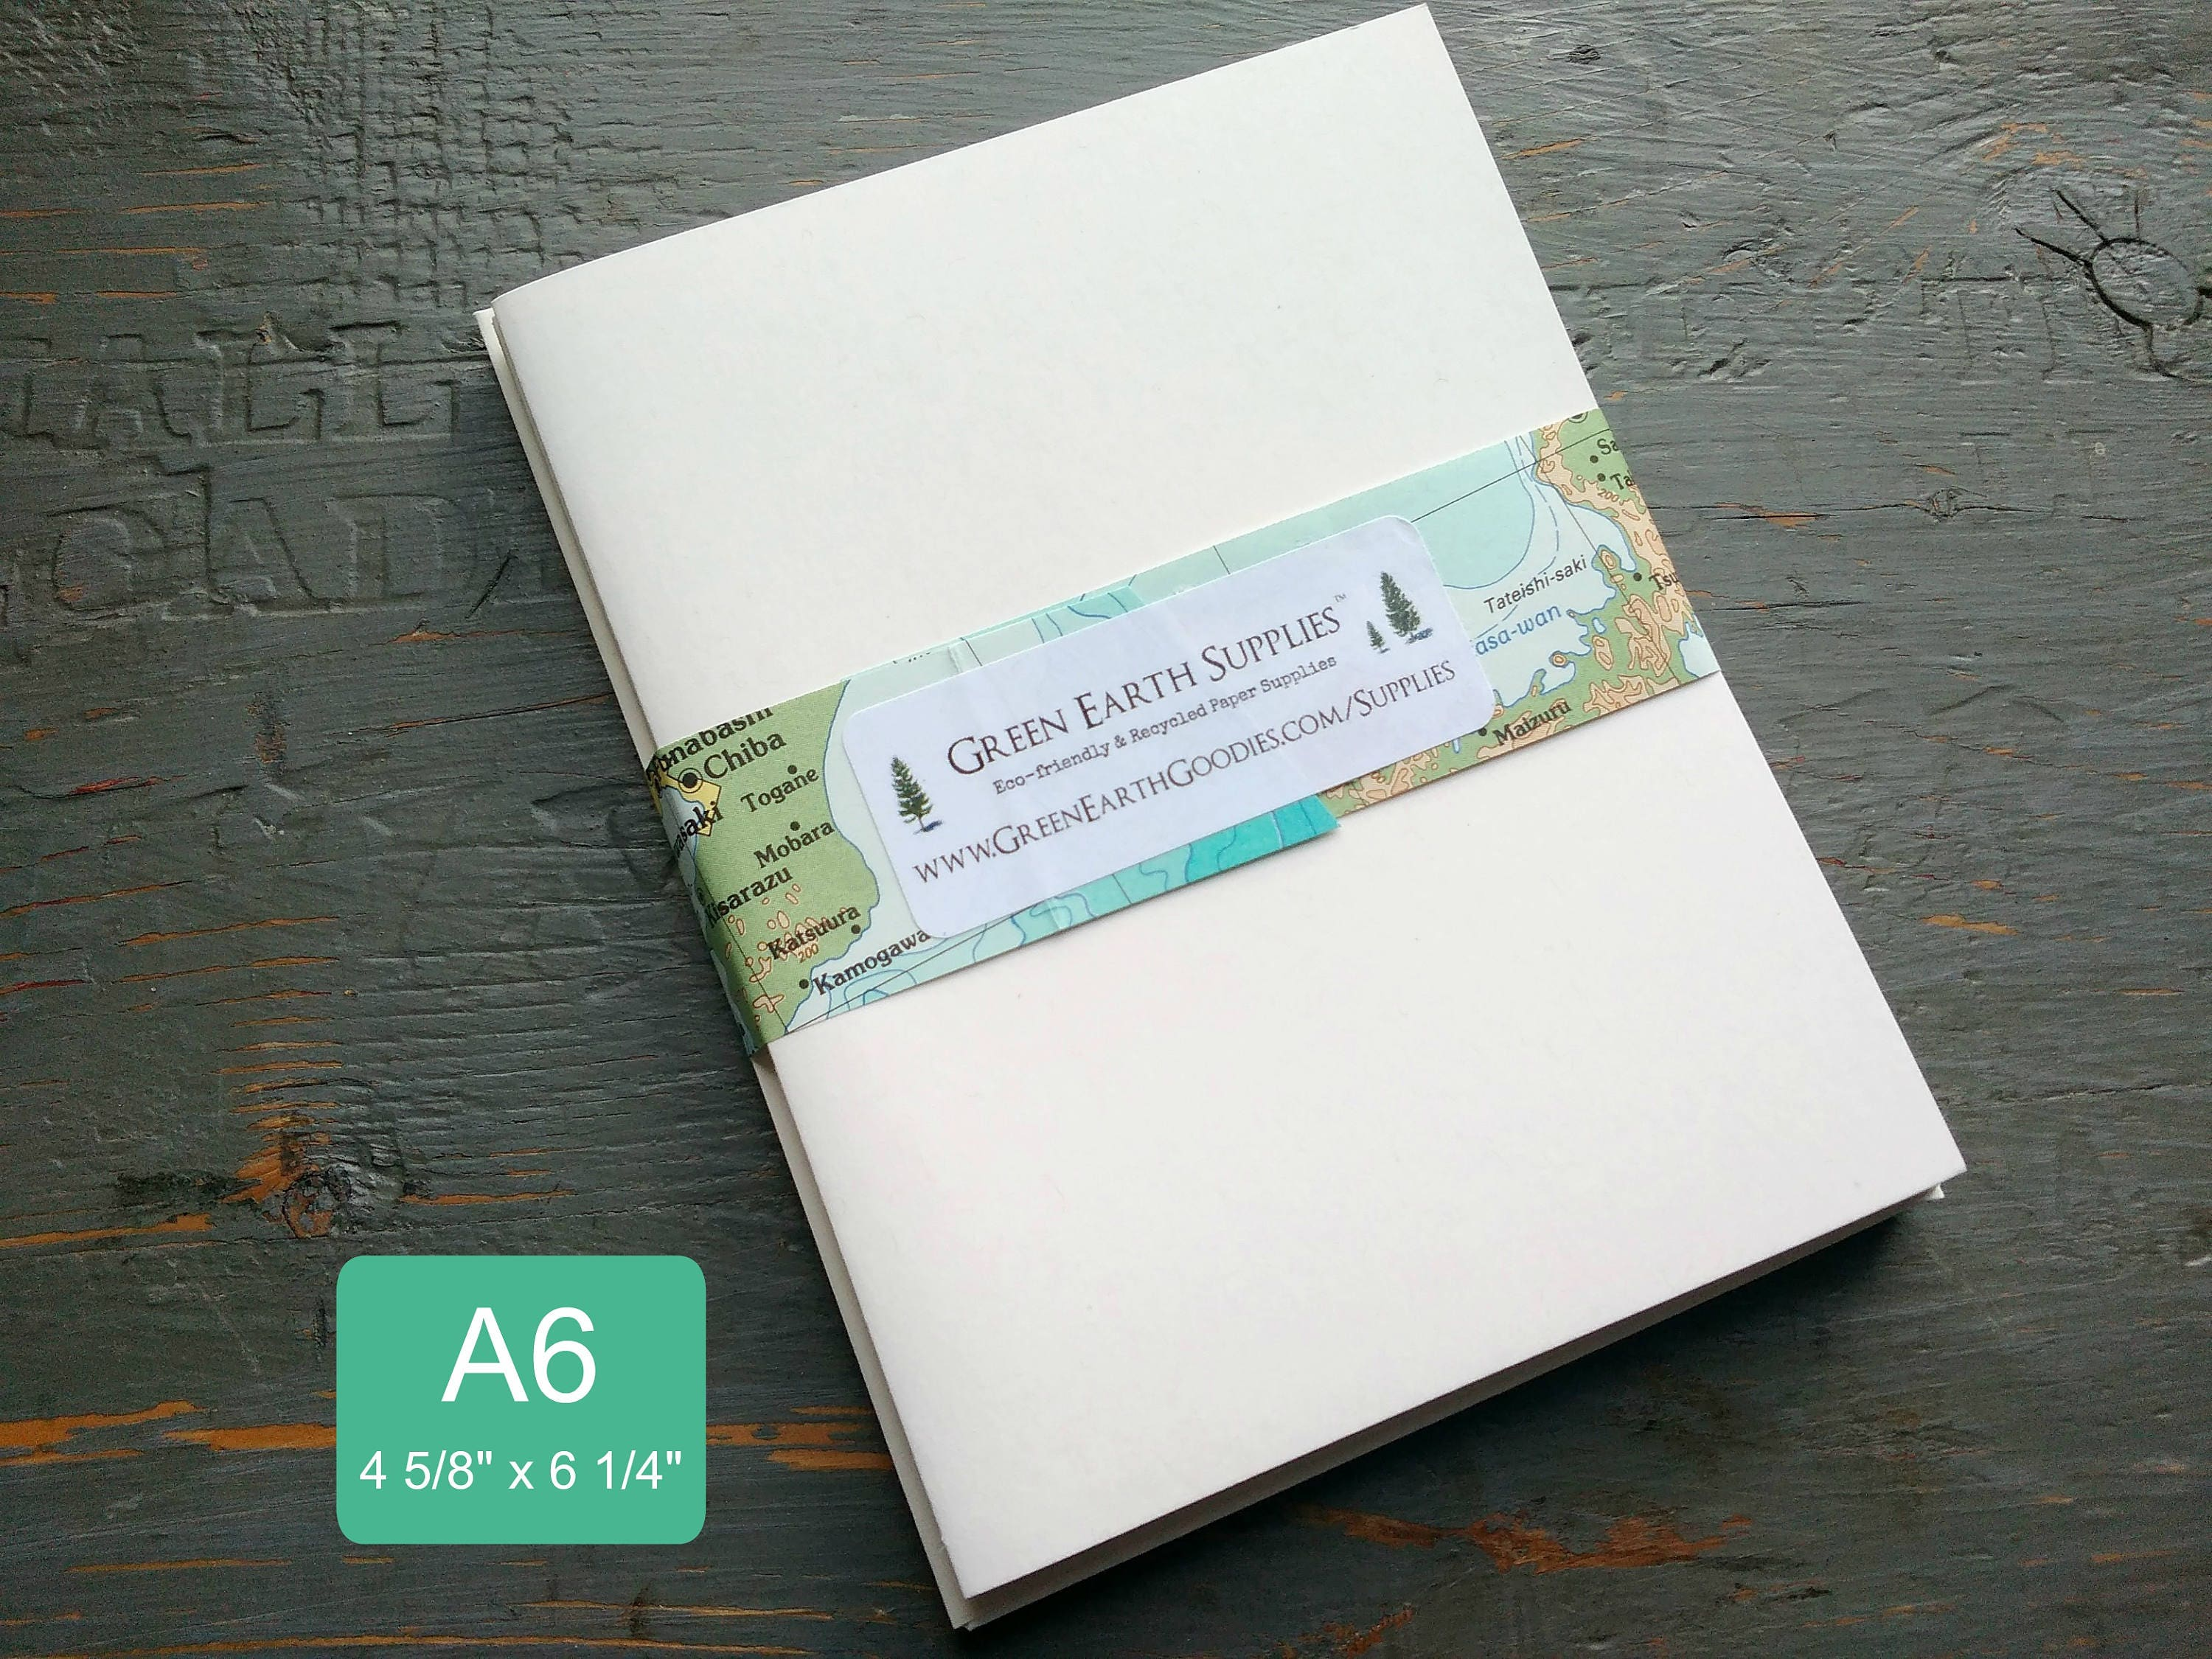 4 5//8 x 6 1//4 Pack of 500 A6 Folded Card